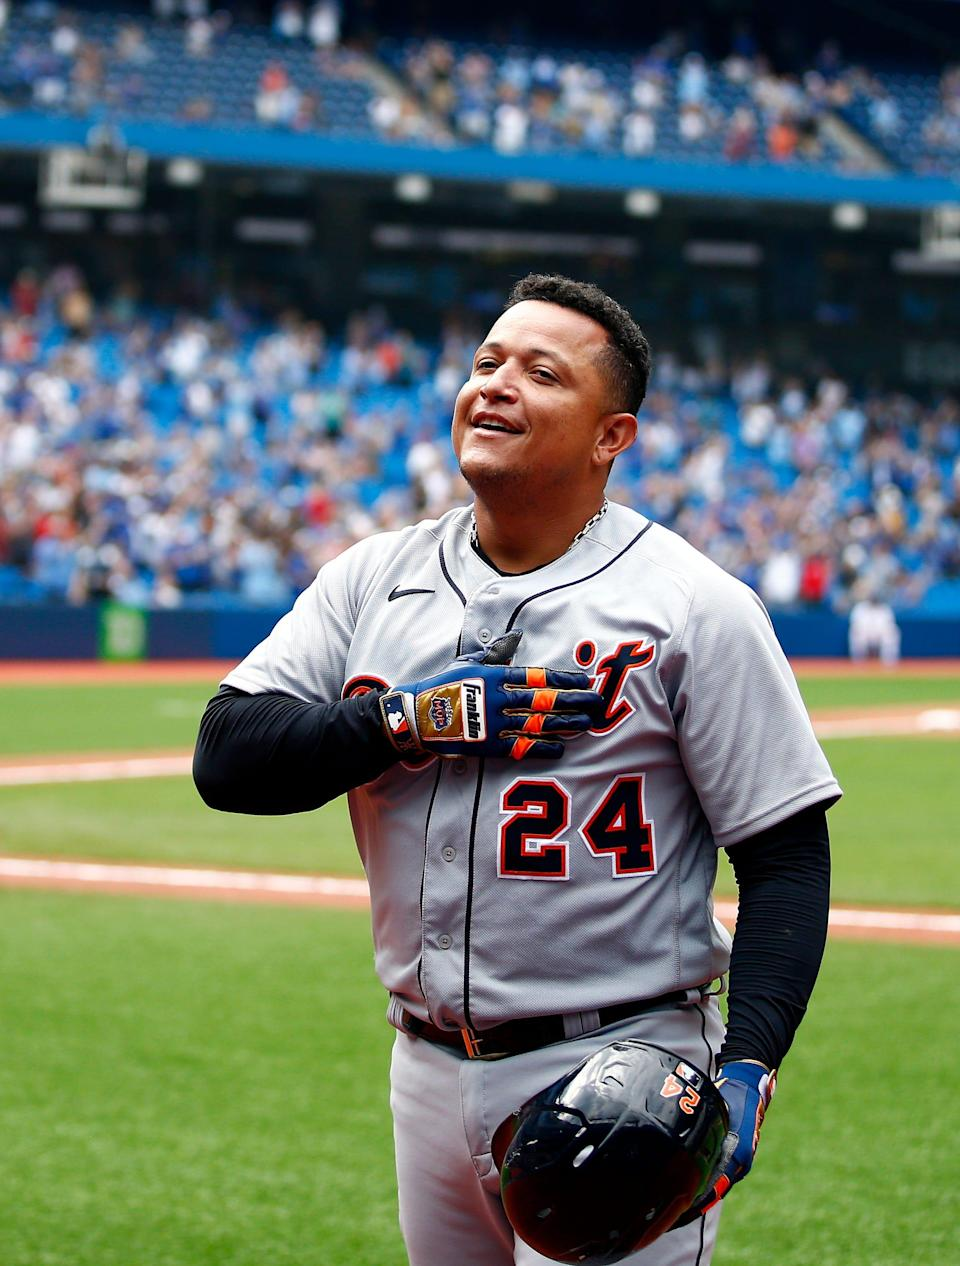 Detroit Tigers hitter Miguel Cabrera celebrates with fans on a curtain call after hitting his 500th career home run in the sixth inning against the Toronto Blue Jays at Rogers Centre on Aug. 22, 2021 in Toronto.